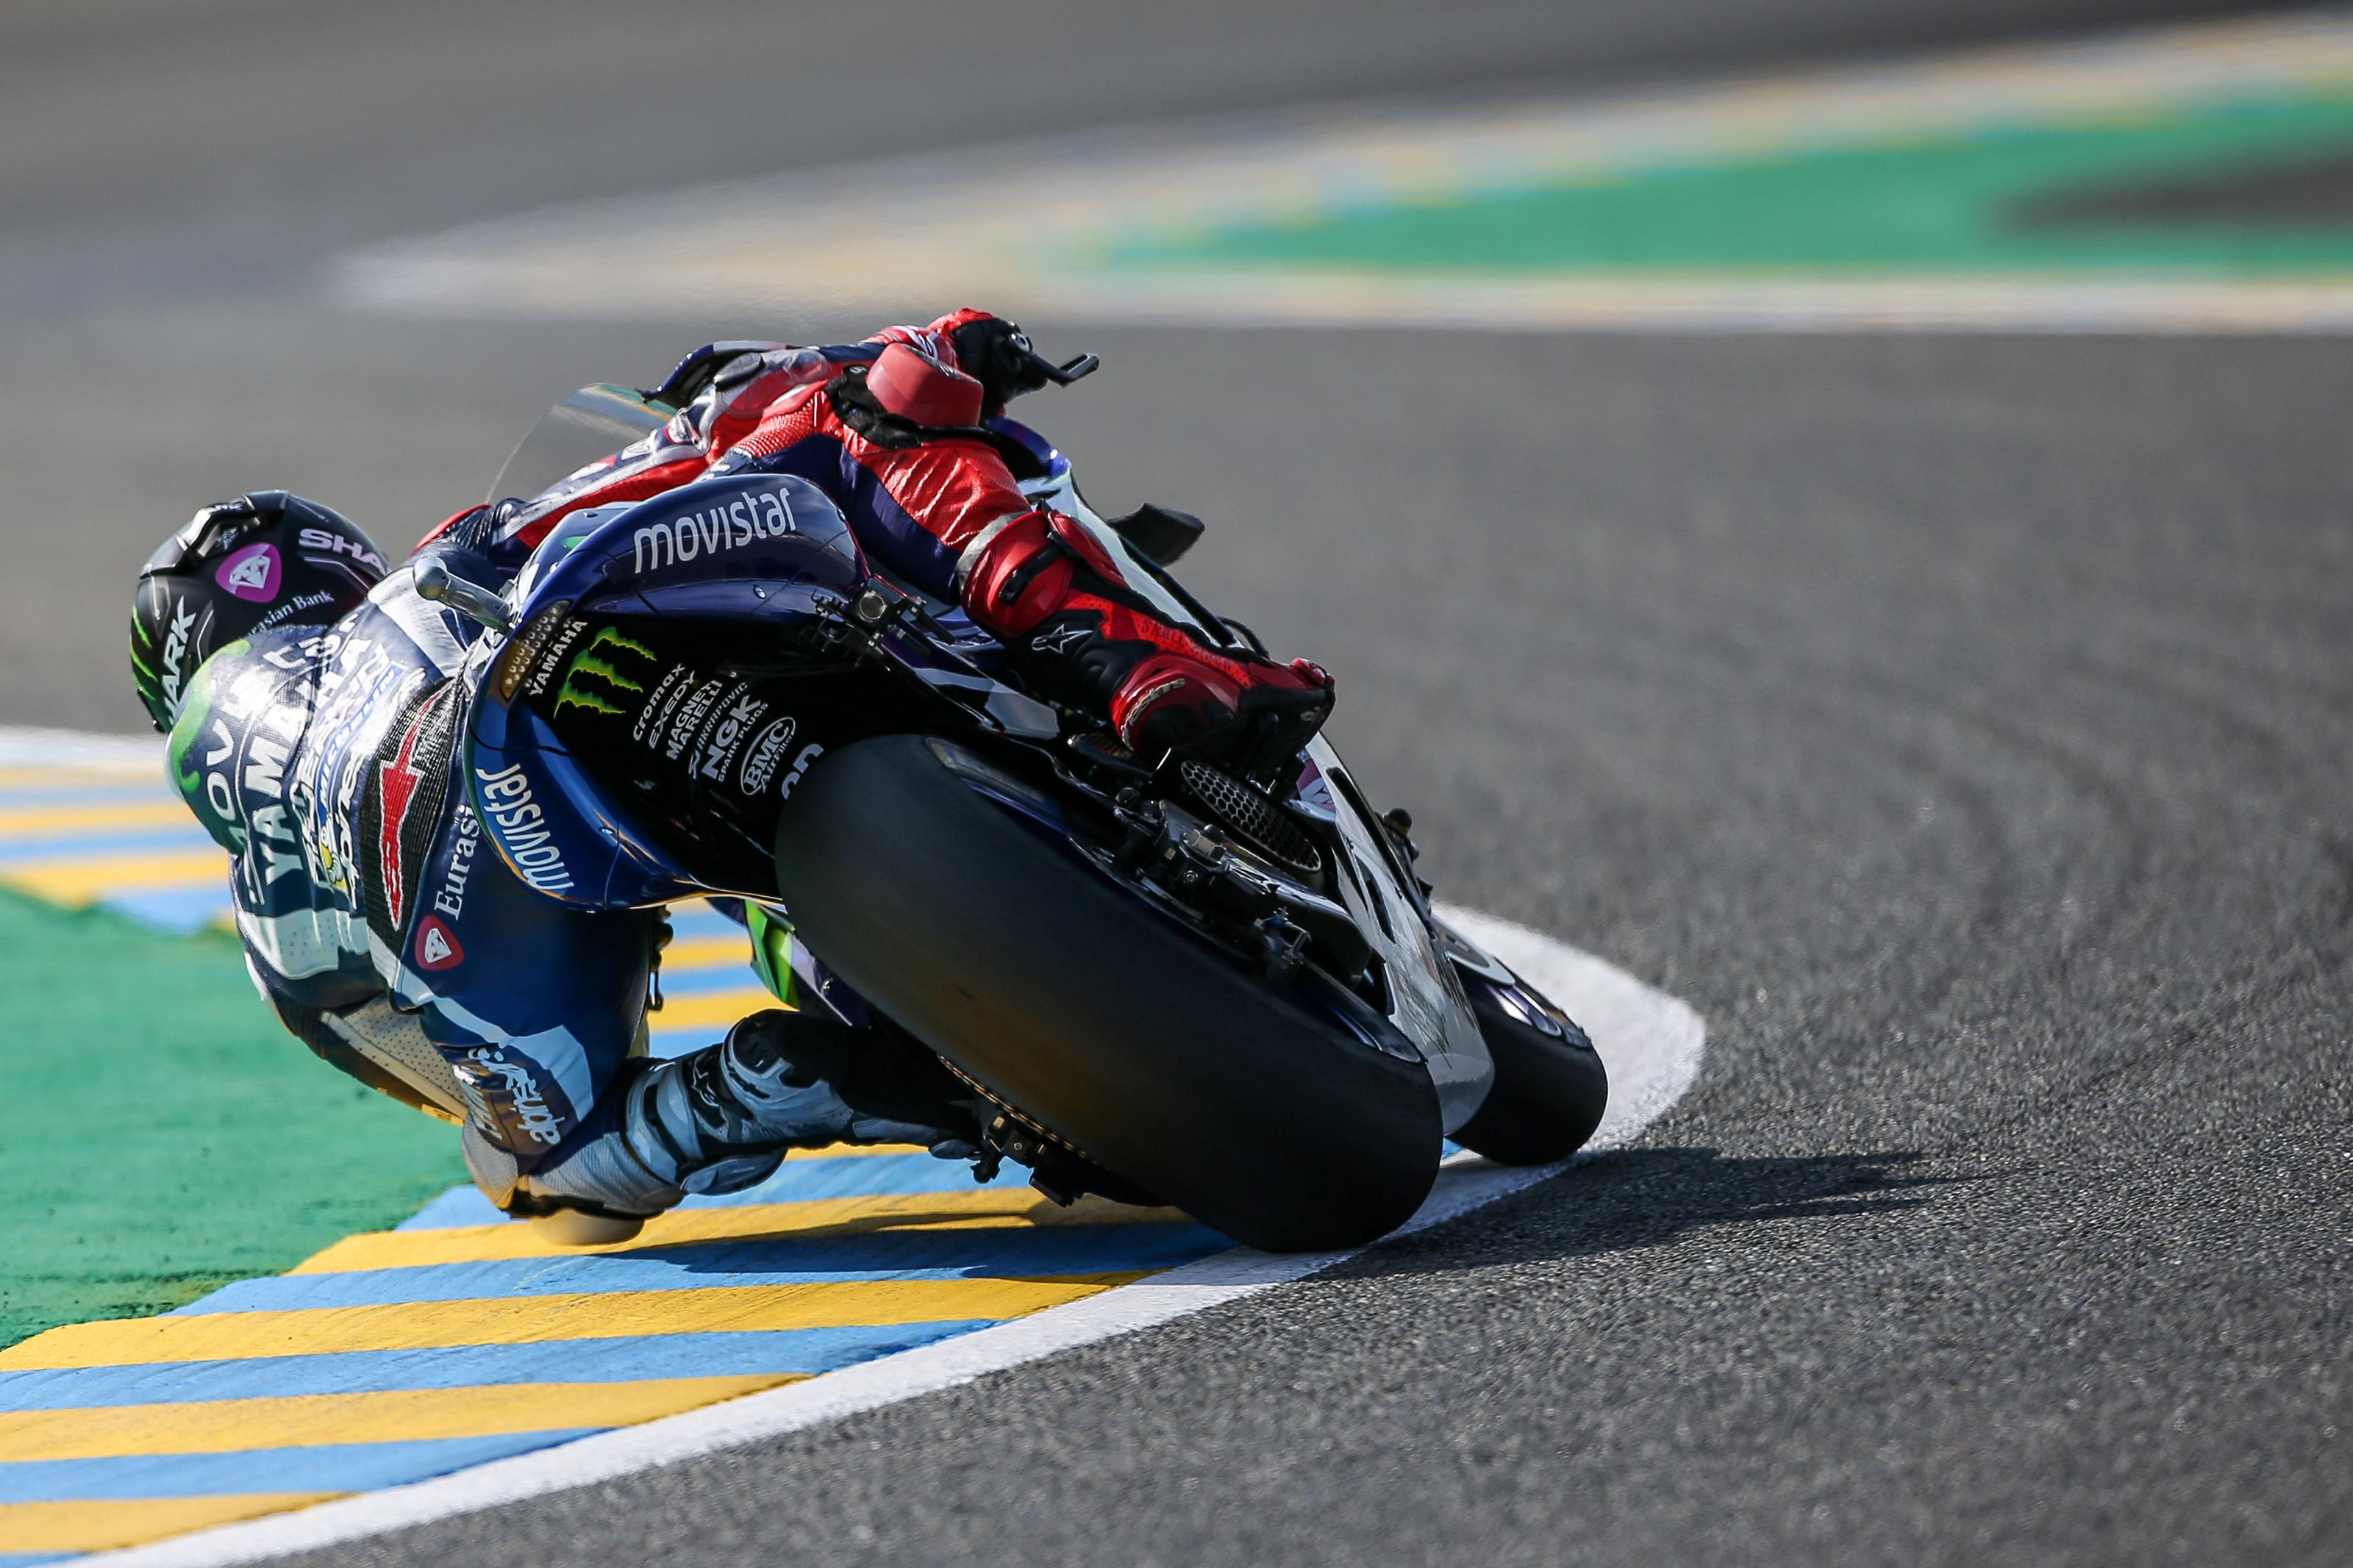 MotoGP Qualifying Results from Le Mans